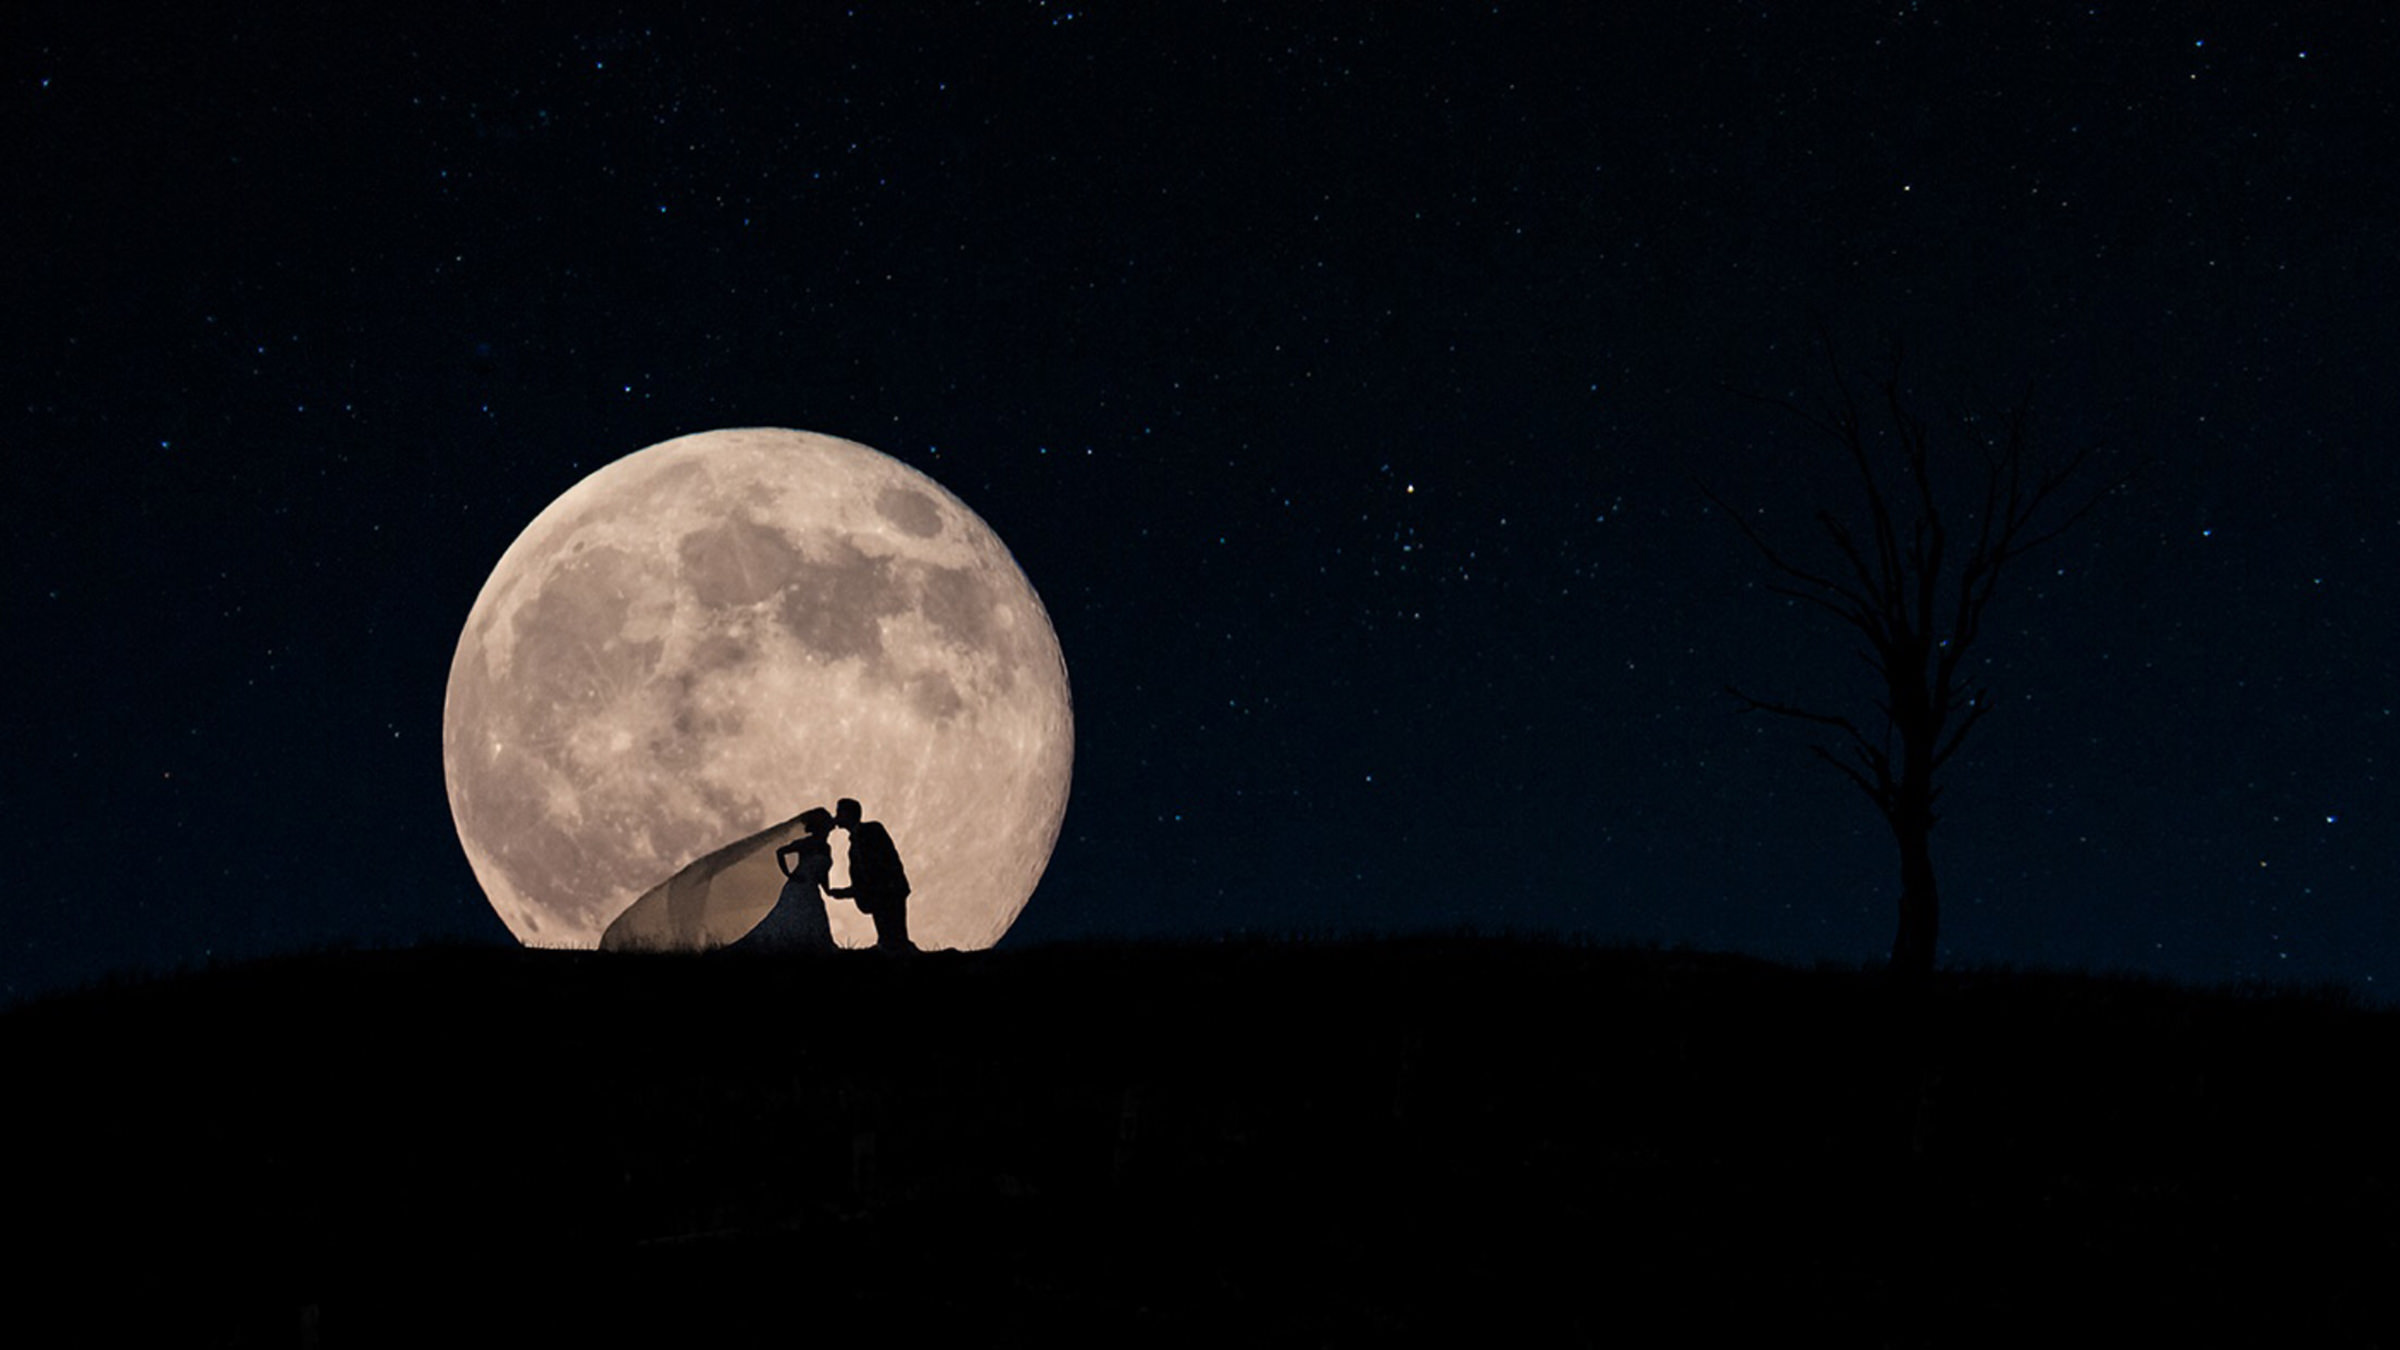 Fairy tale silhouette of couple in front of the moon by David and Sherry Photography